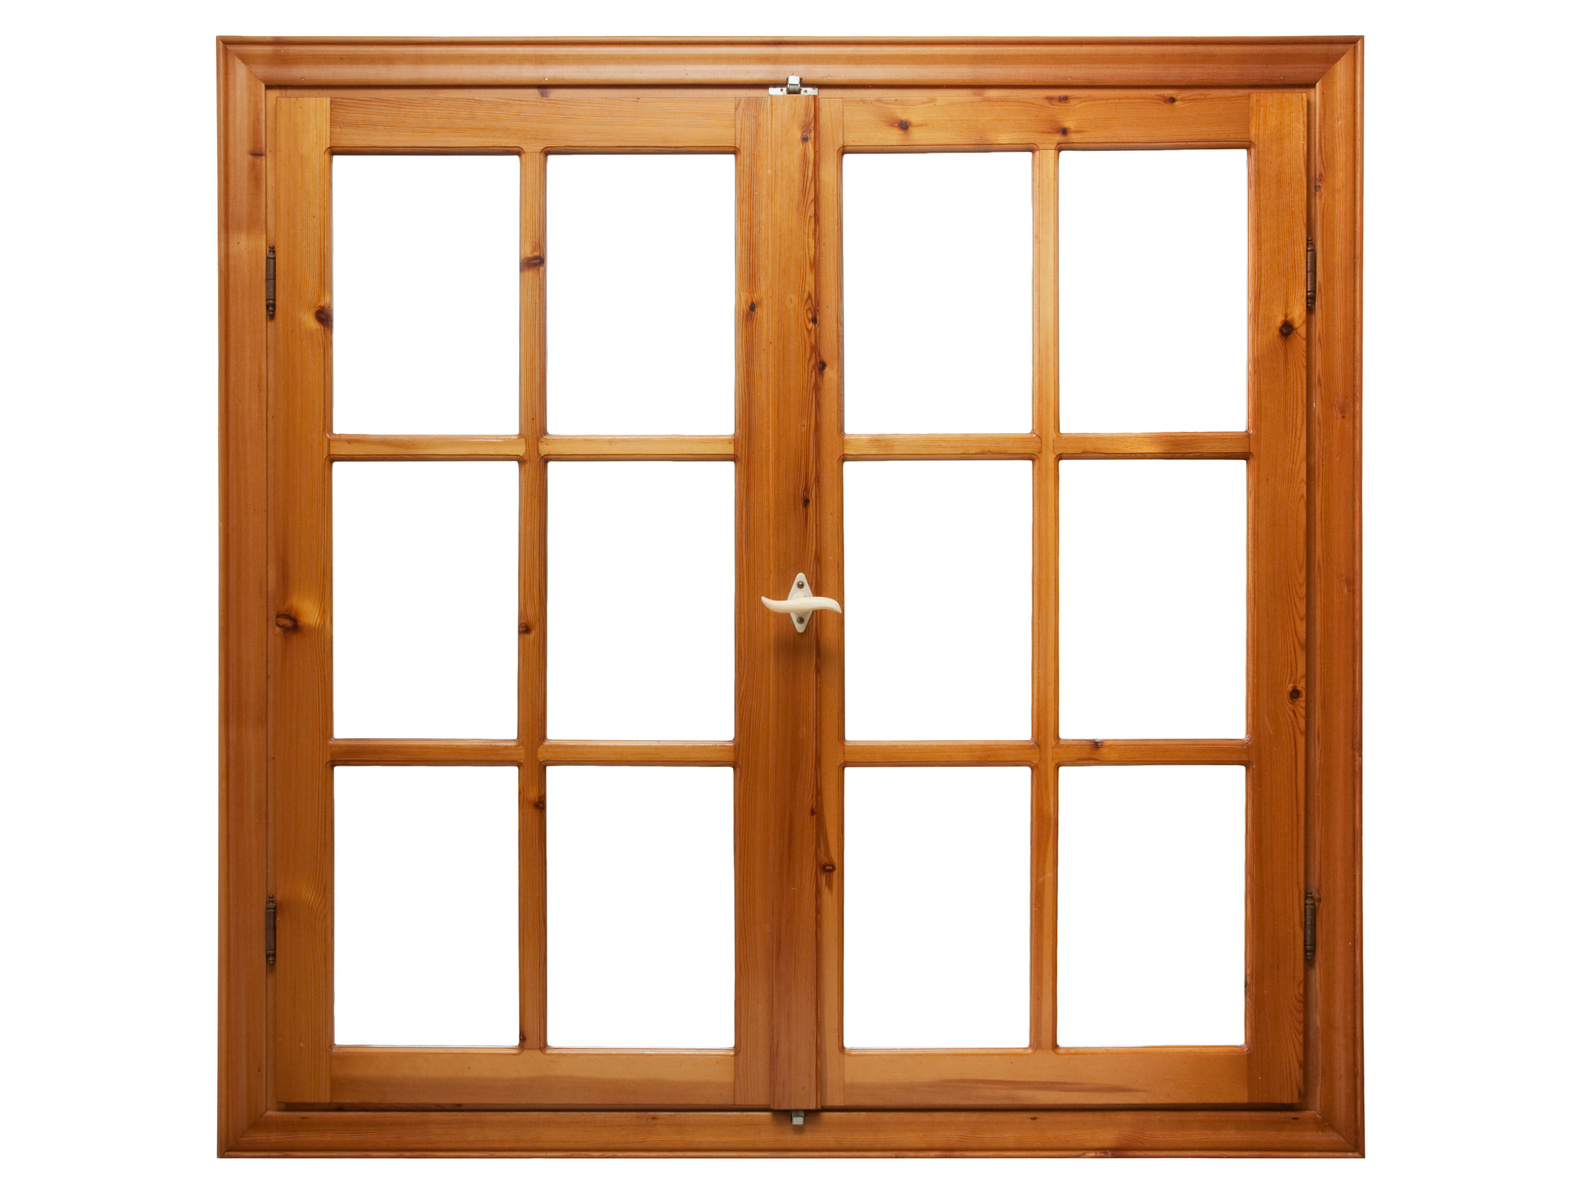 4 reasons why you should choose wood windows for Window design wood